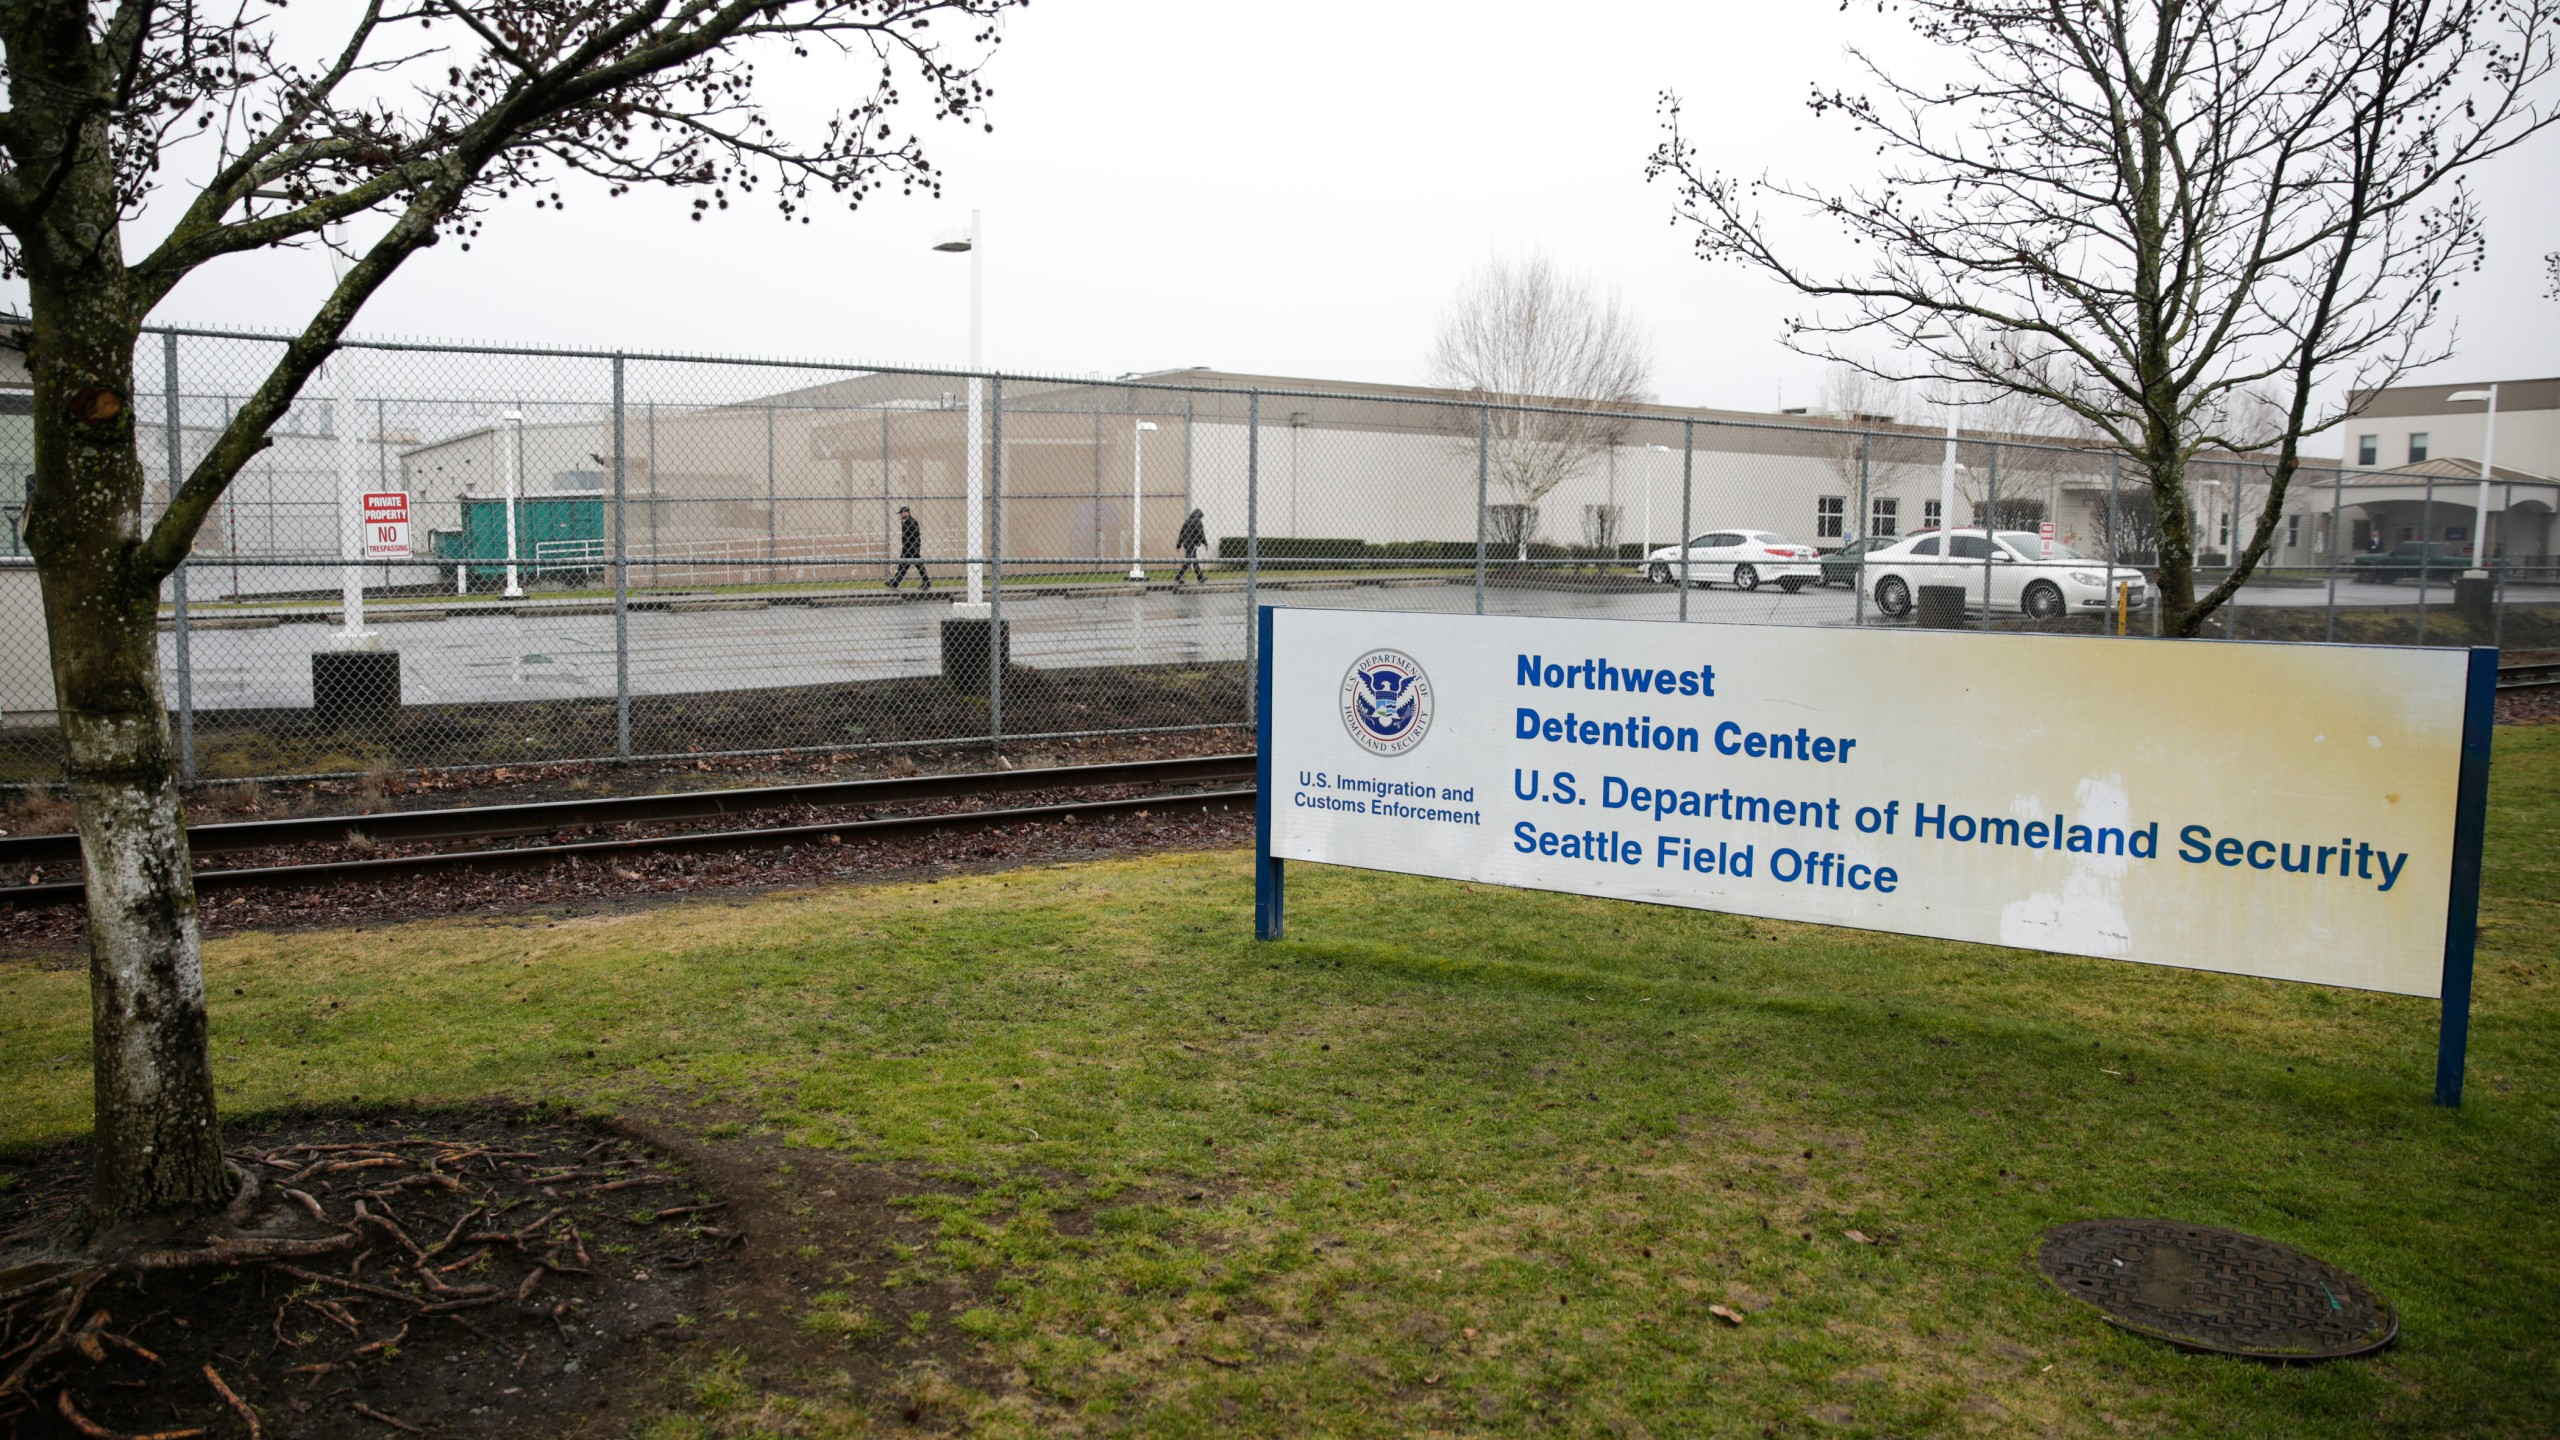 The U.S. Department of Homeland Security Northwest Detention Center is pictured in Tacoma, Washington on Feb. 26, 2017. (Credit: JASON REDMOND/AFP/Getty Images)